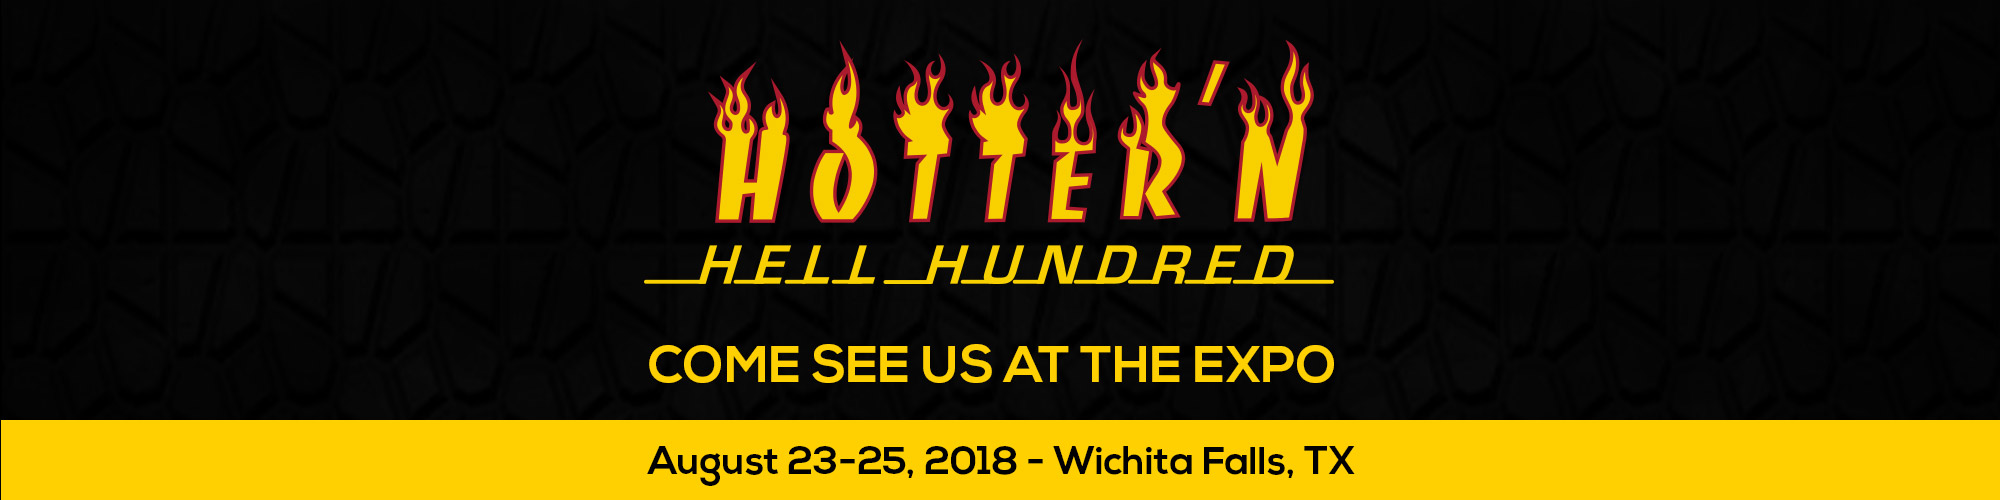 Hotter'N Hell 100. Come See Us At The Expo August 23-24th, 2018 in Wichita Falls Tx.